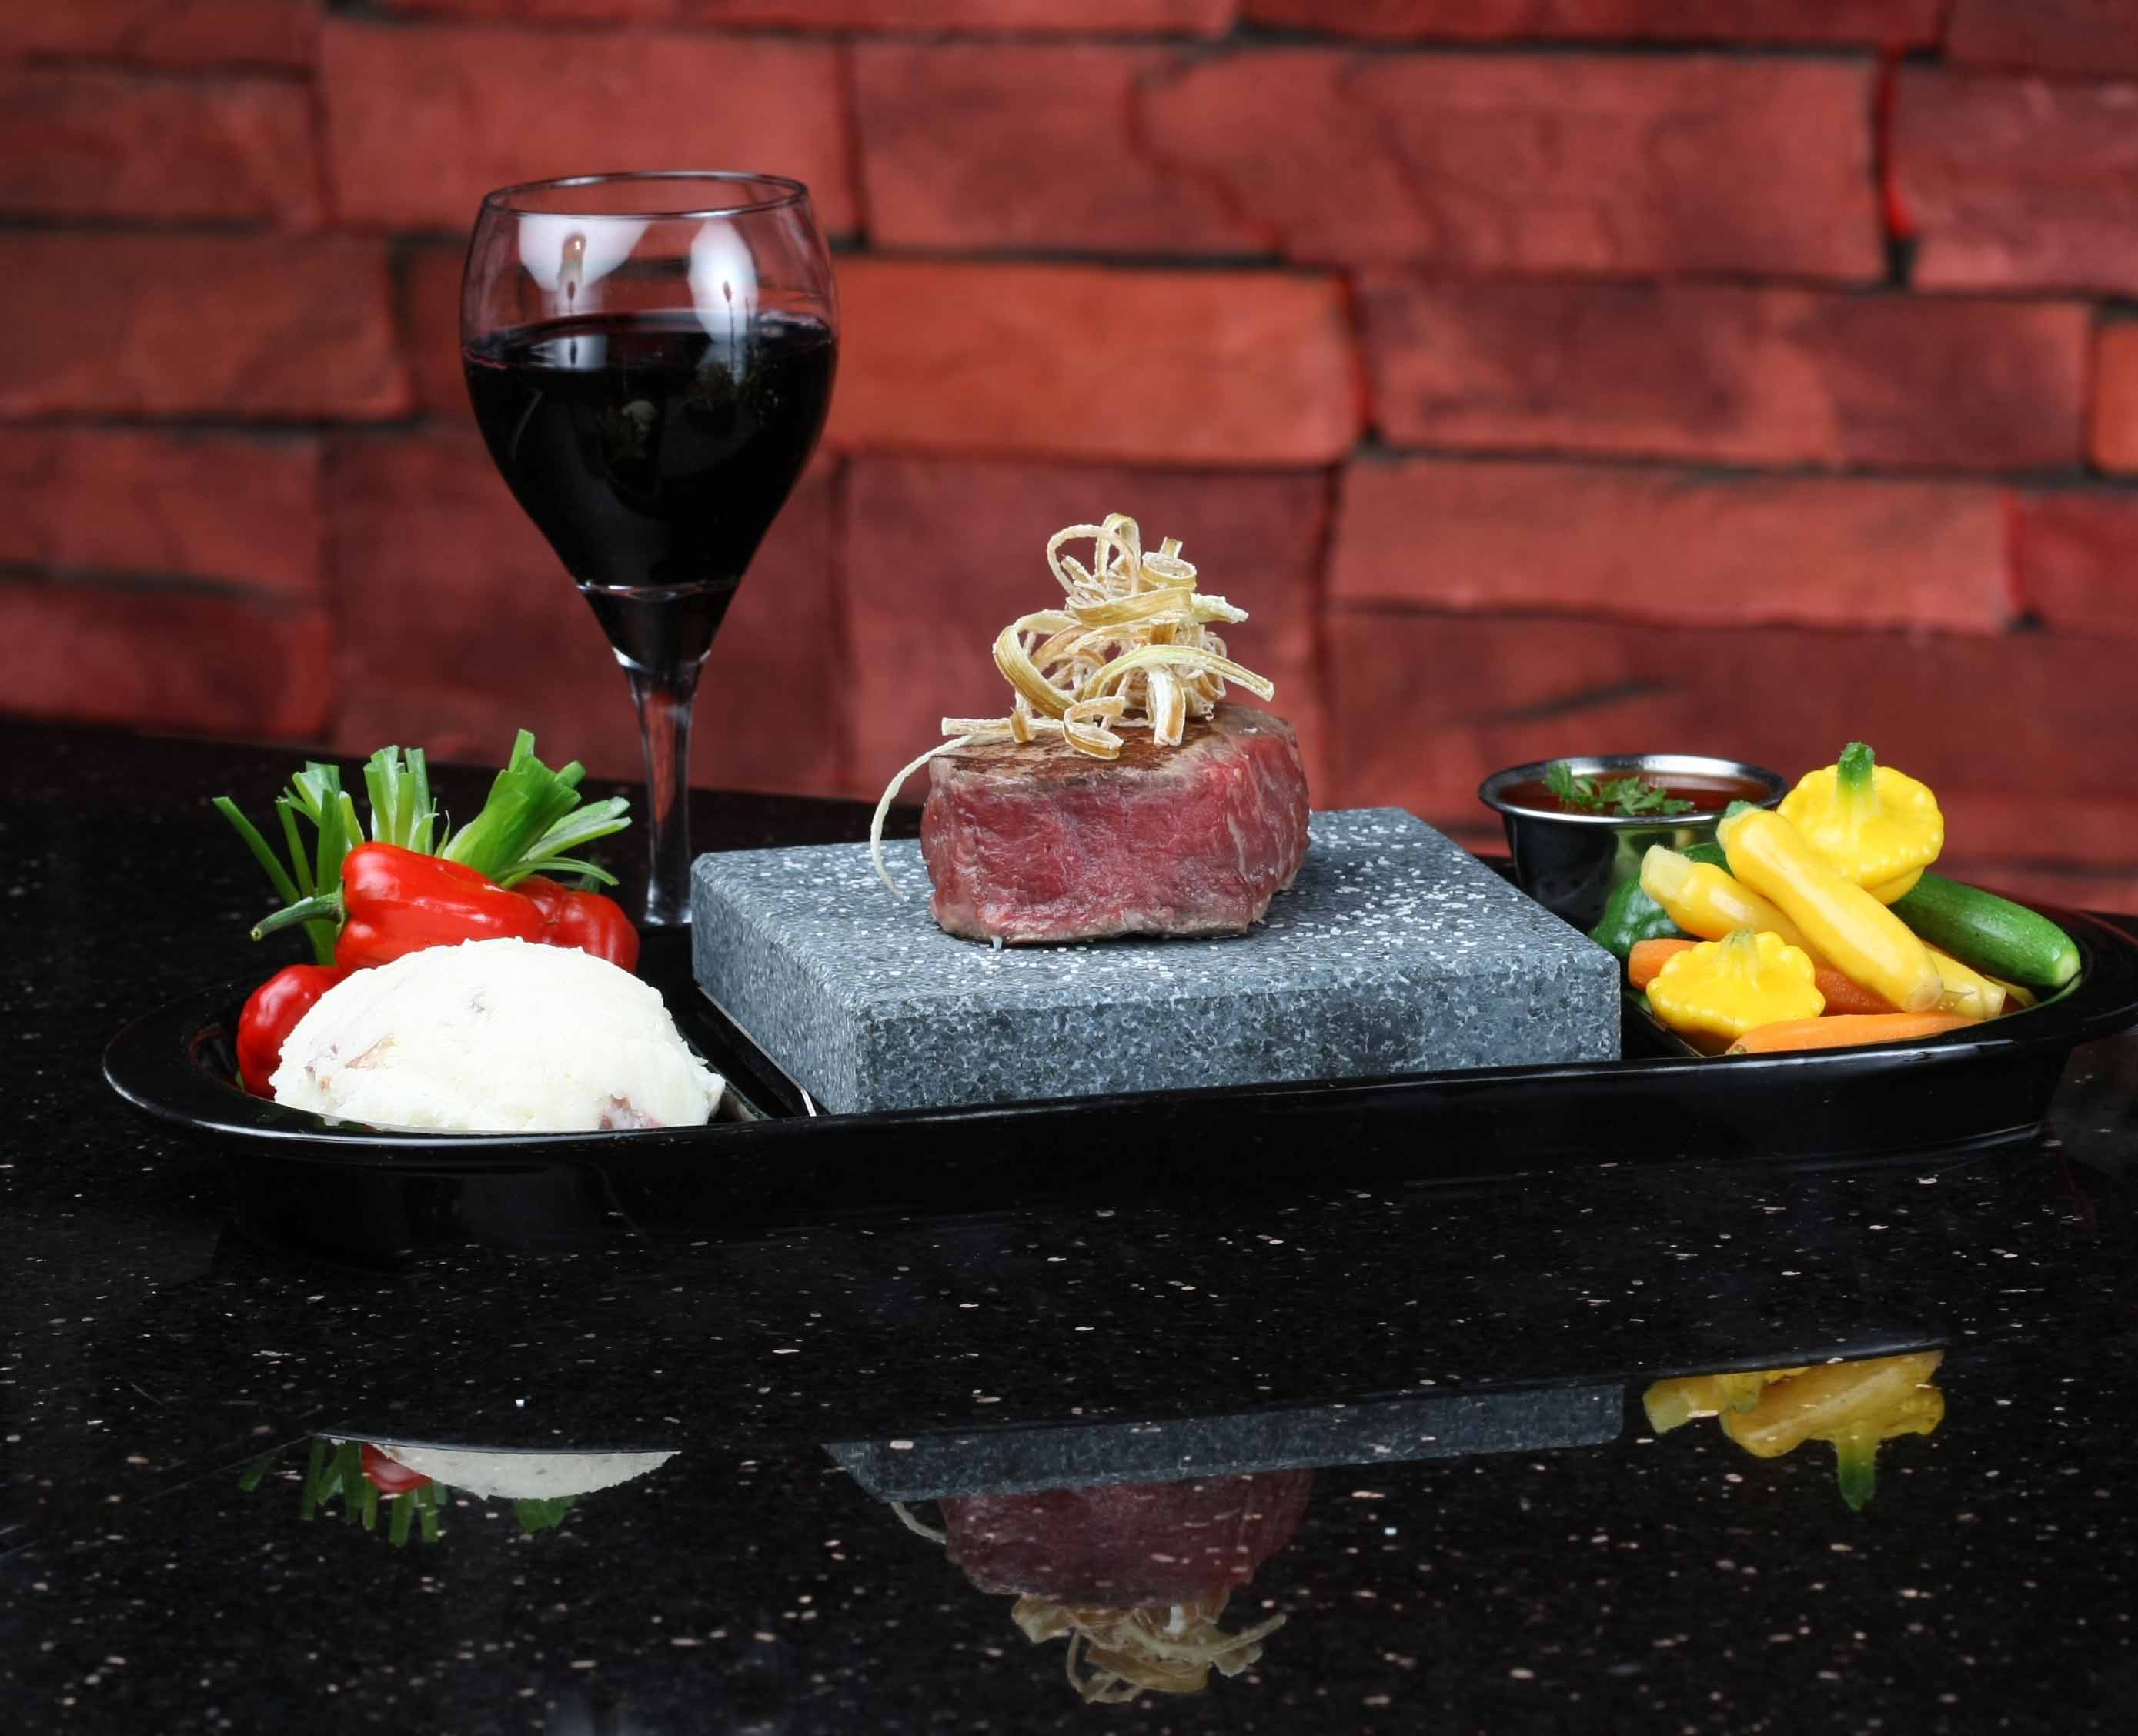 Volcano Hot Stone Grill Chooses Rok Cooking As Its